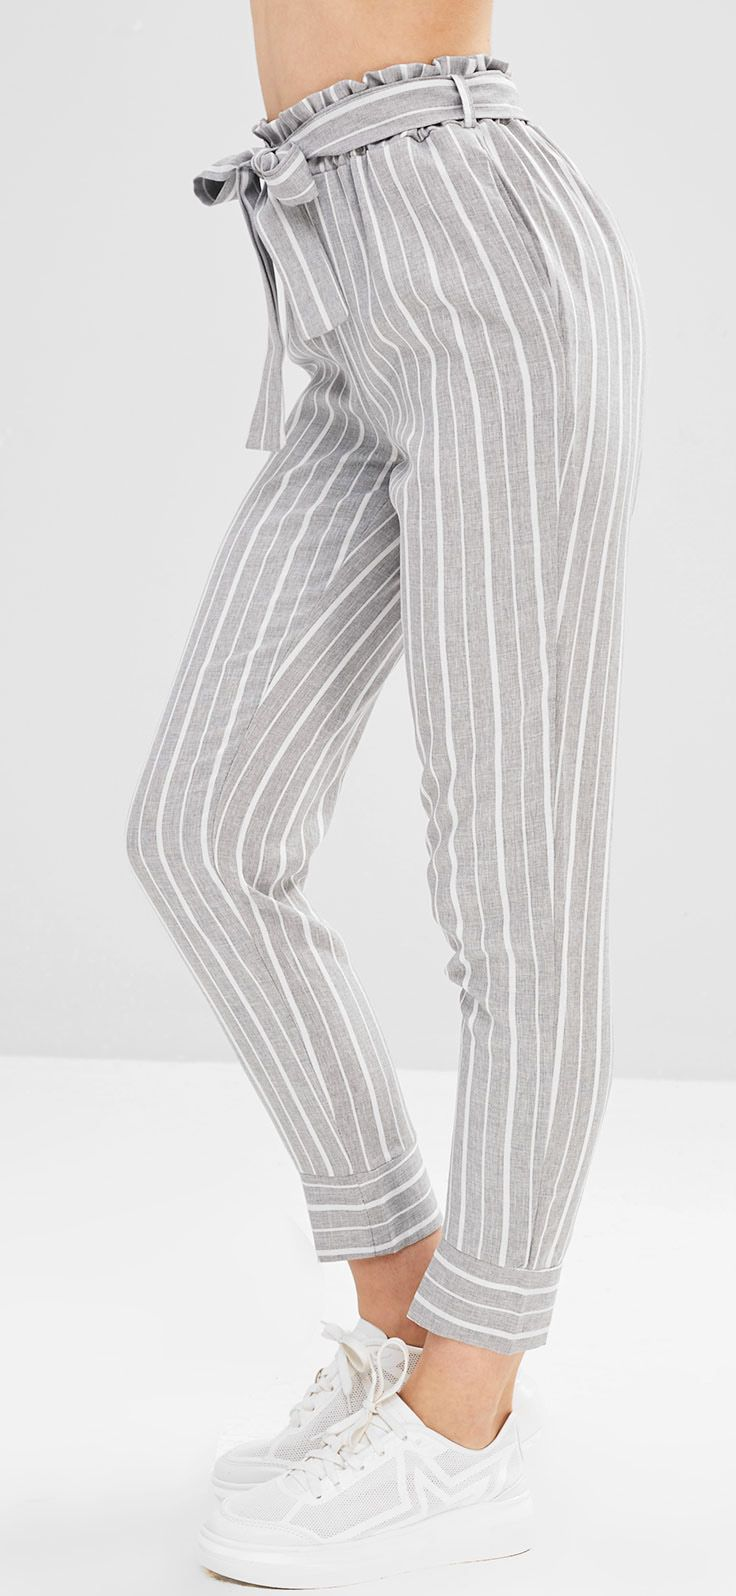 Gray Casual Belted Striped High Waisted Tapered Pants women